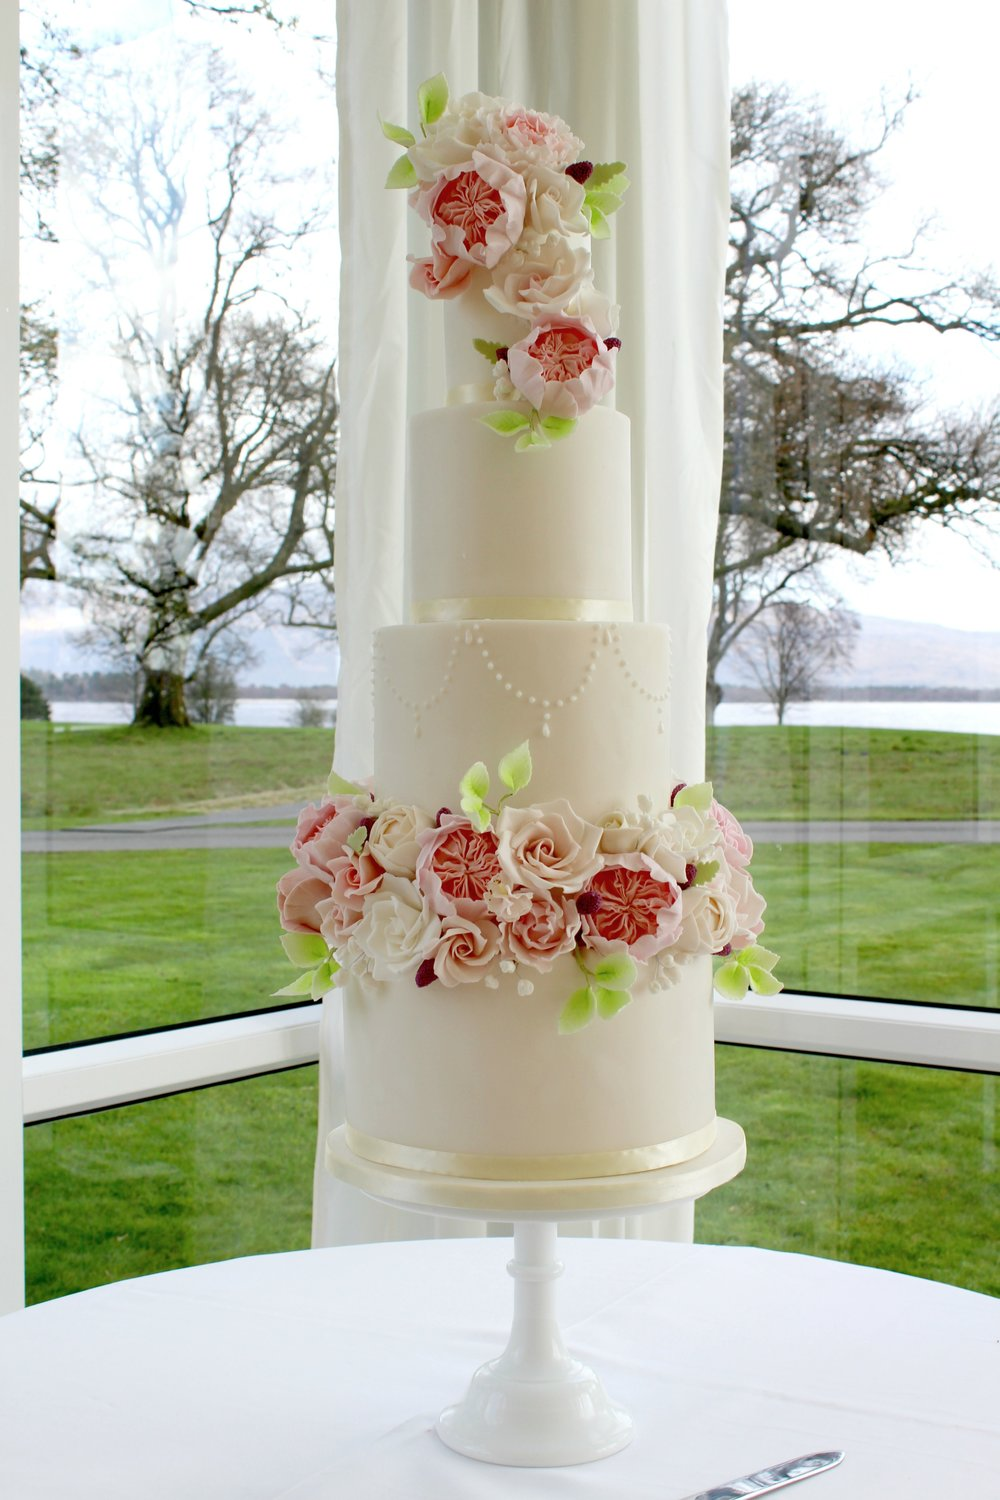 scotland's leading designer of luxury high end wedding cakes - rosewood cakes